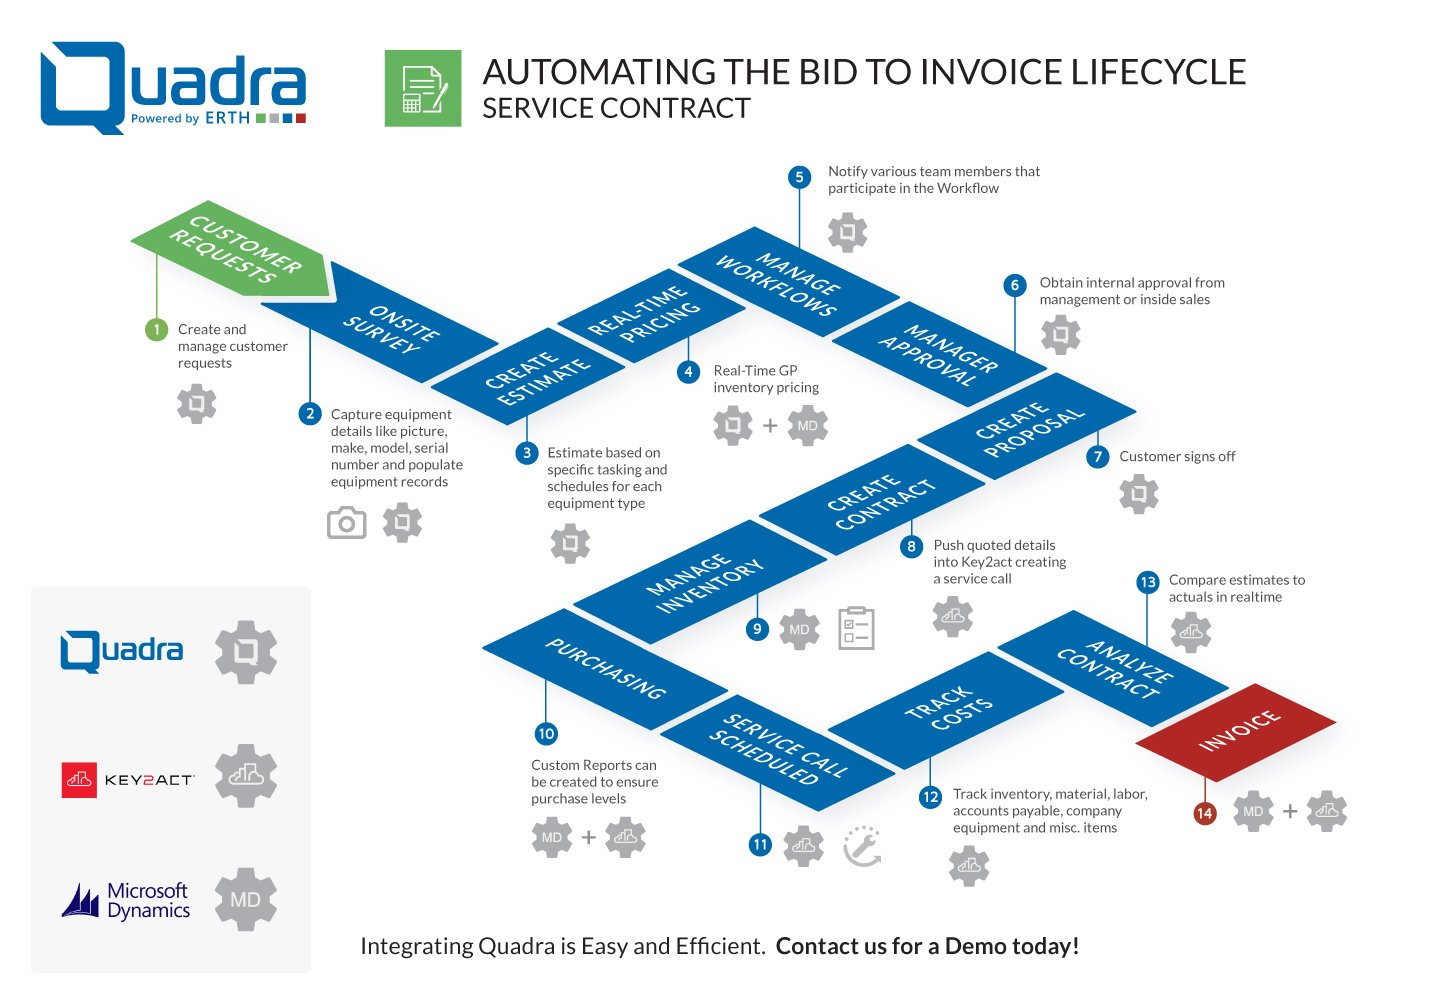 Workflow infographic illustrating Quadra maintenance service contract quoting process from quote to invoice stage